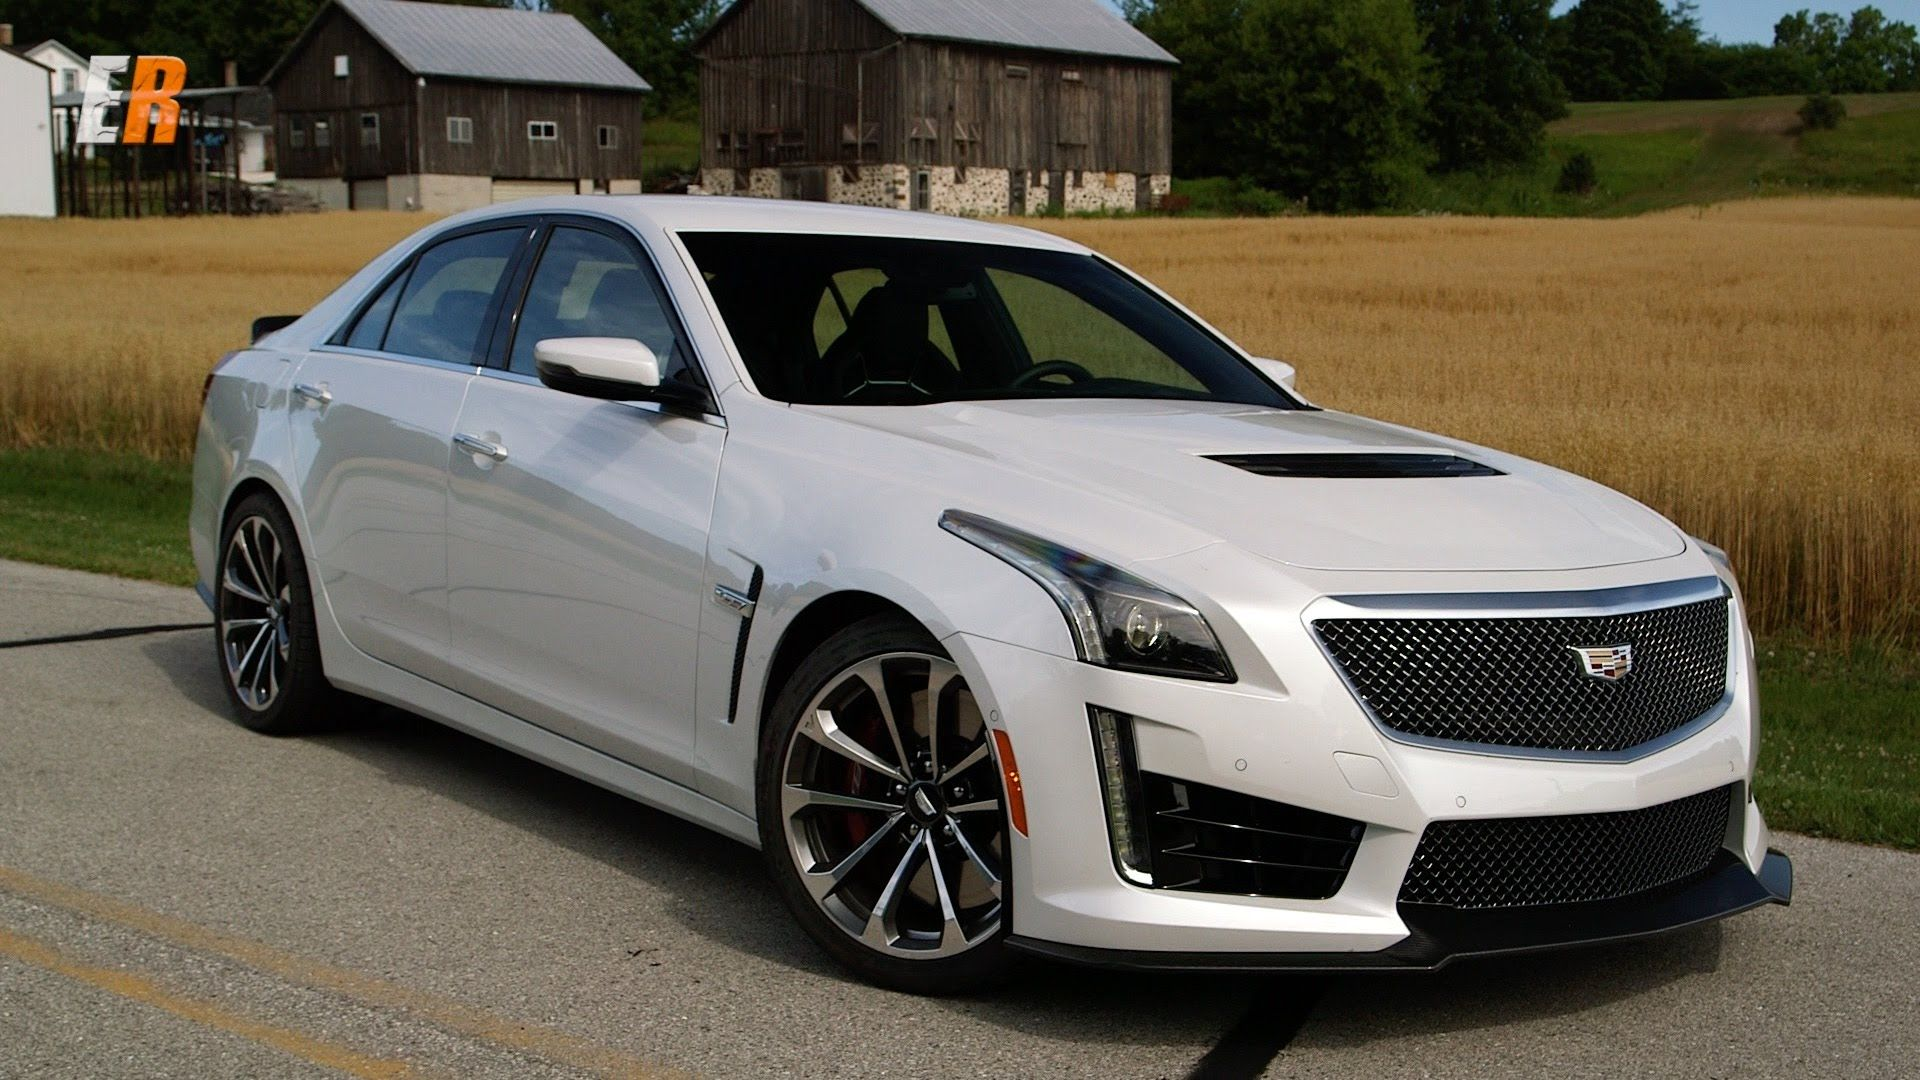 2016 Cadillac Cts V 640 Hp Road And Track Review America